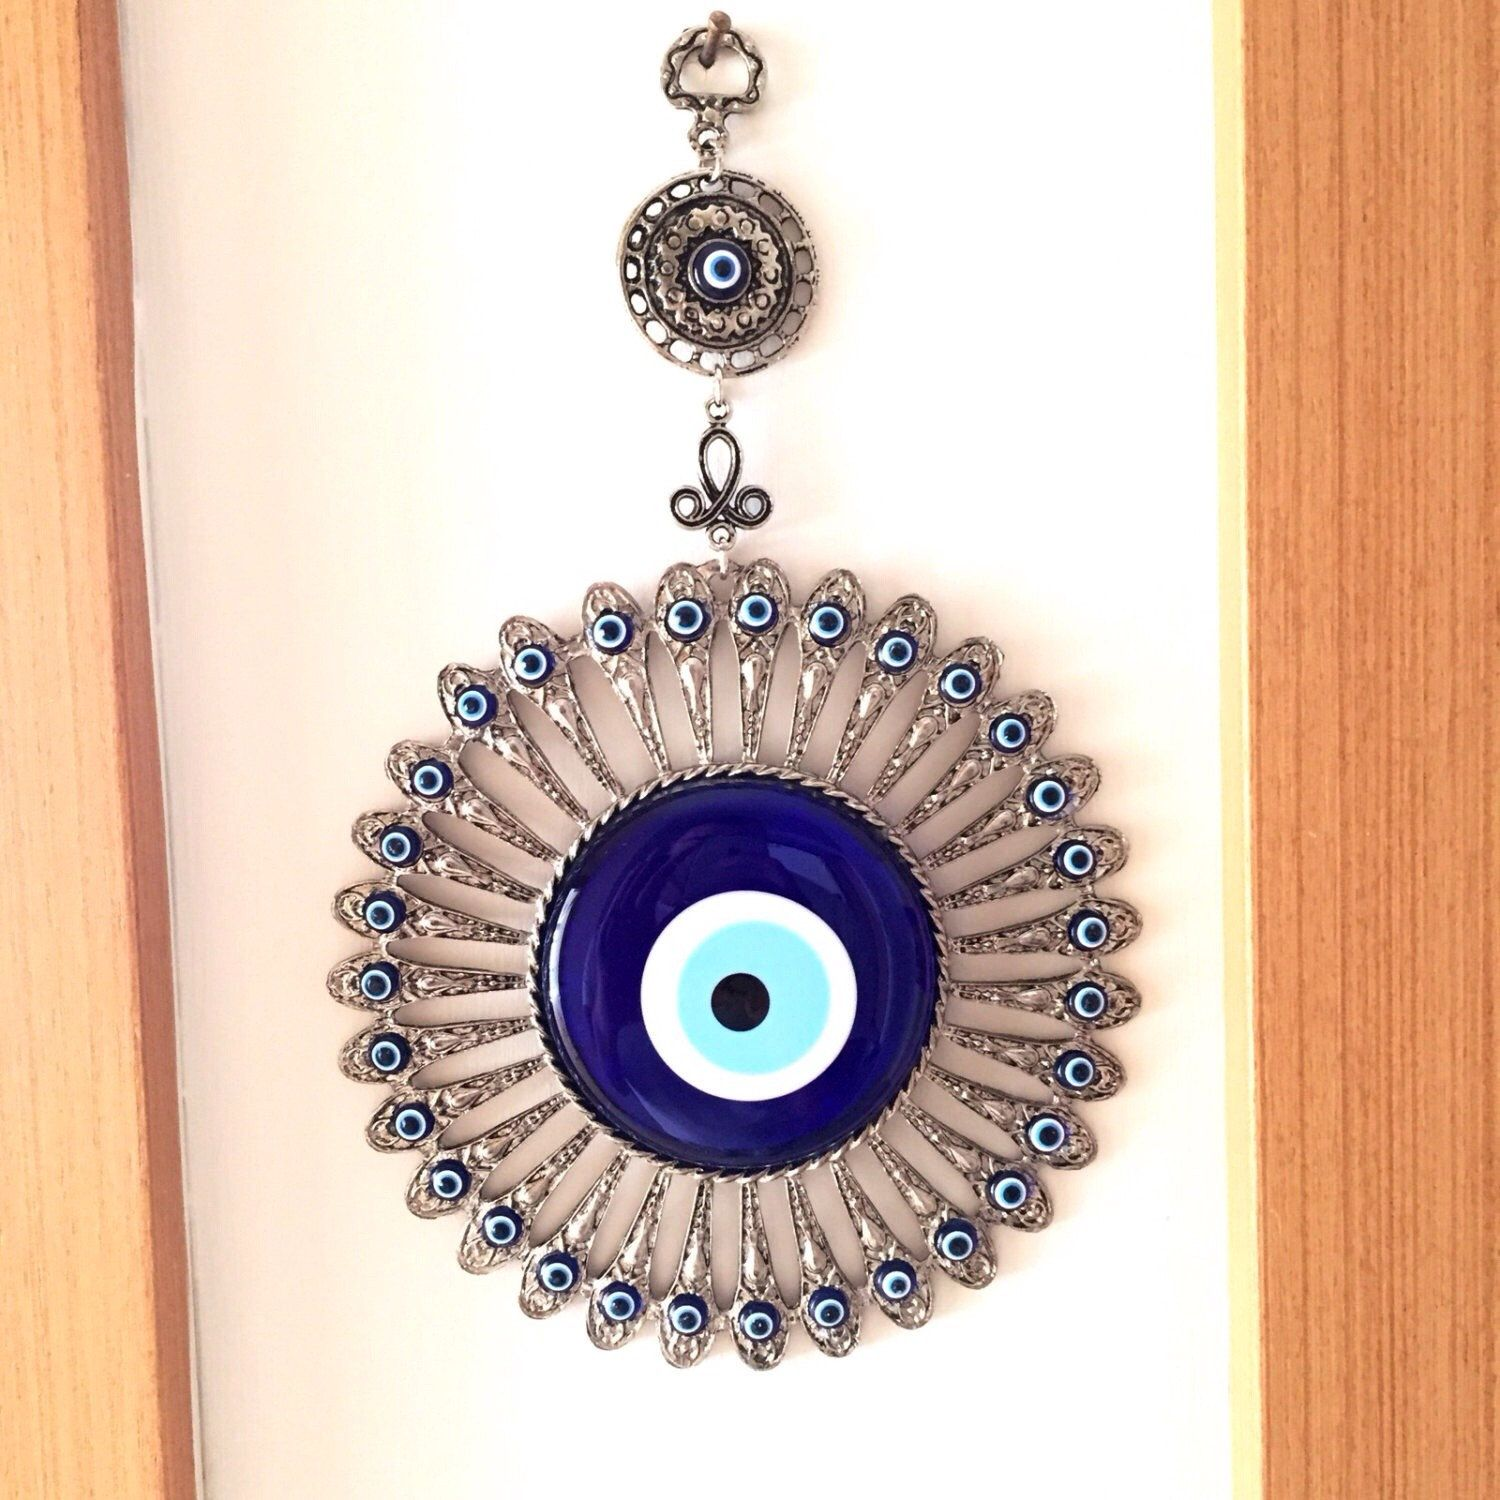 Blue glass evil eye wall hanging metal finecut antique magic blue glass evil eye wall hanging metal finecut antique magic evil eye turkish buycottarizona Image collections